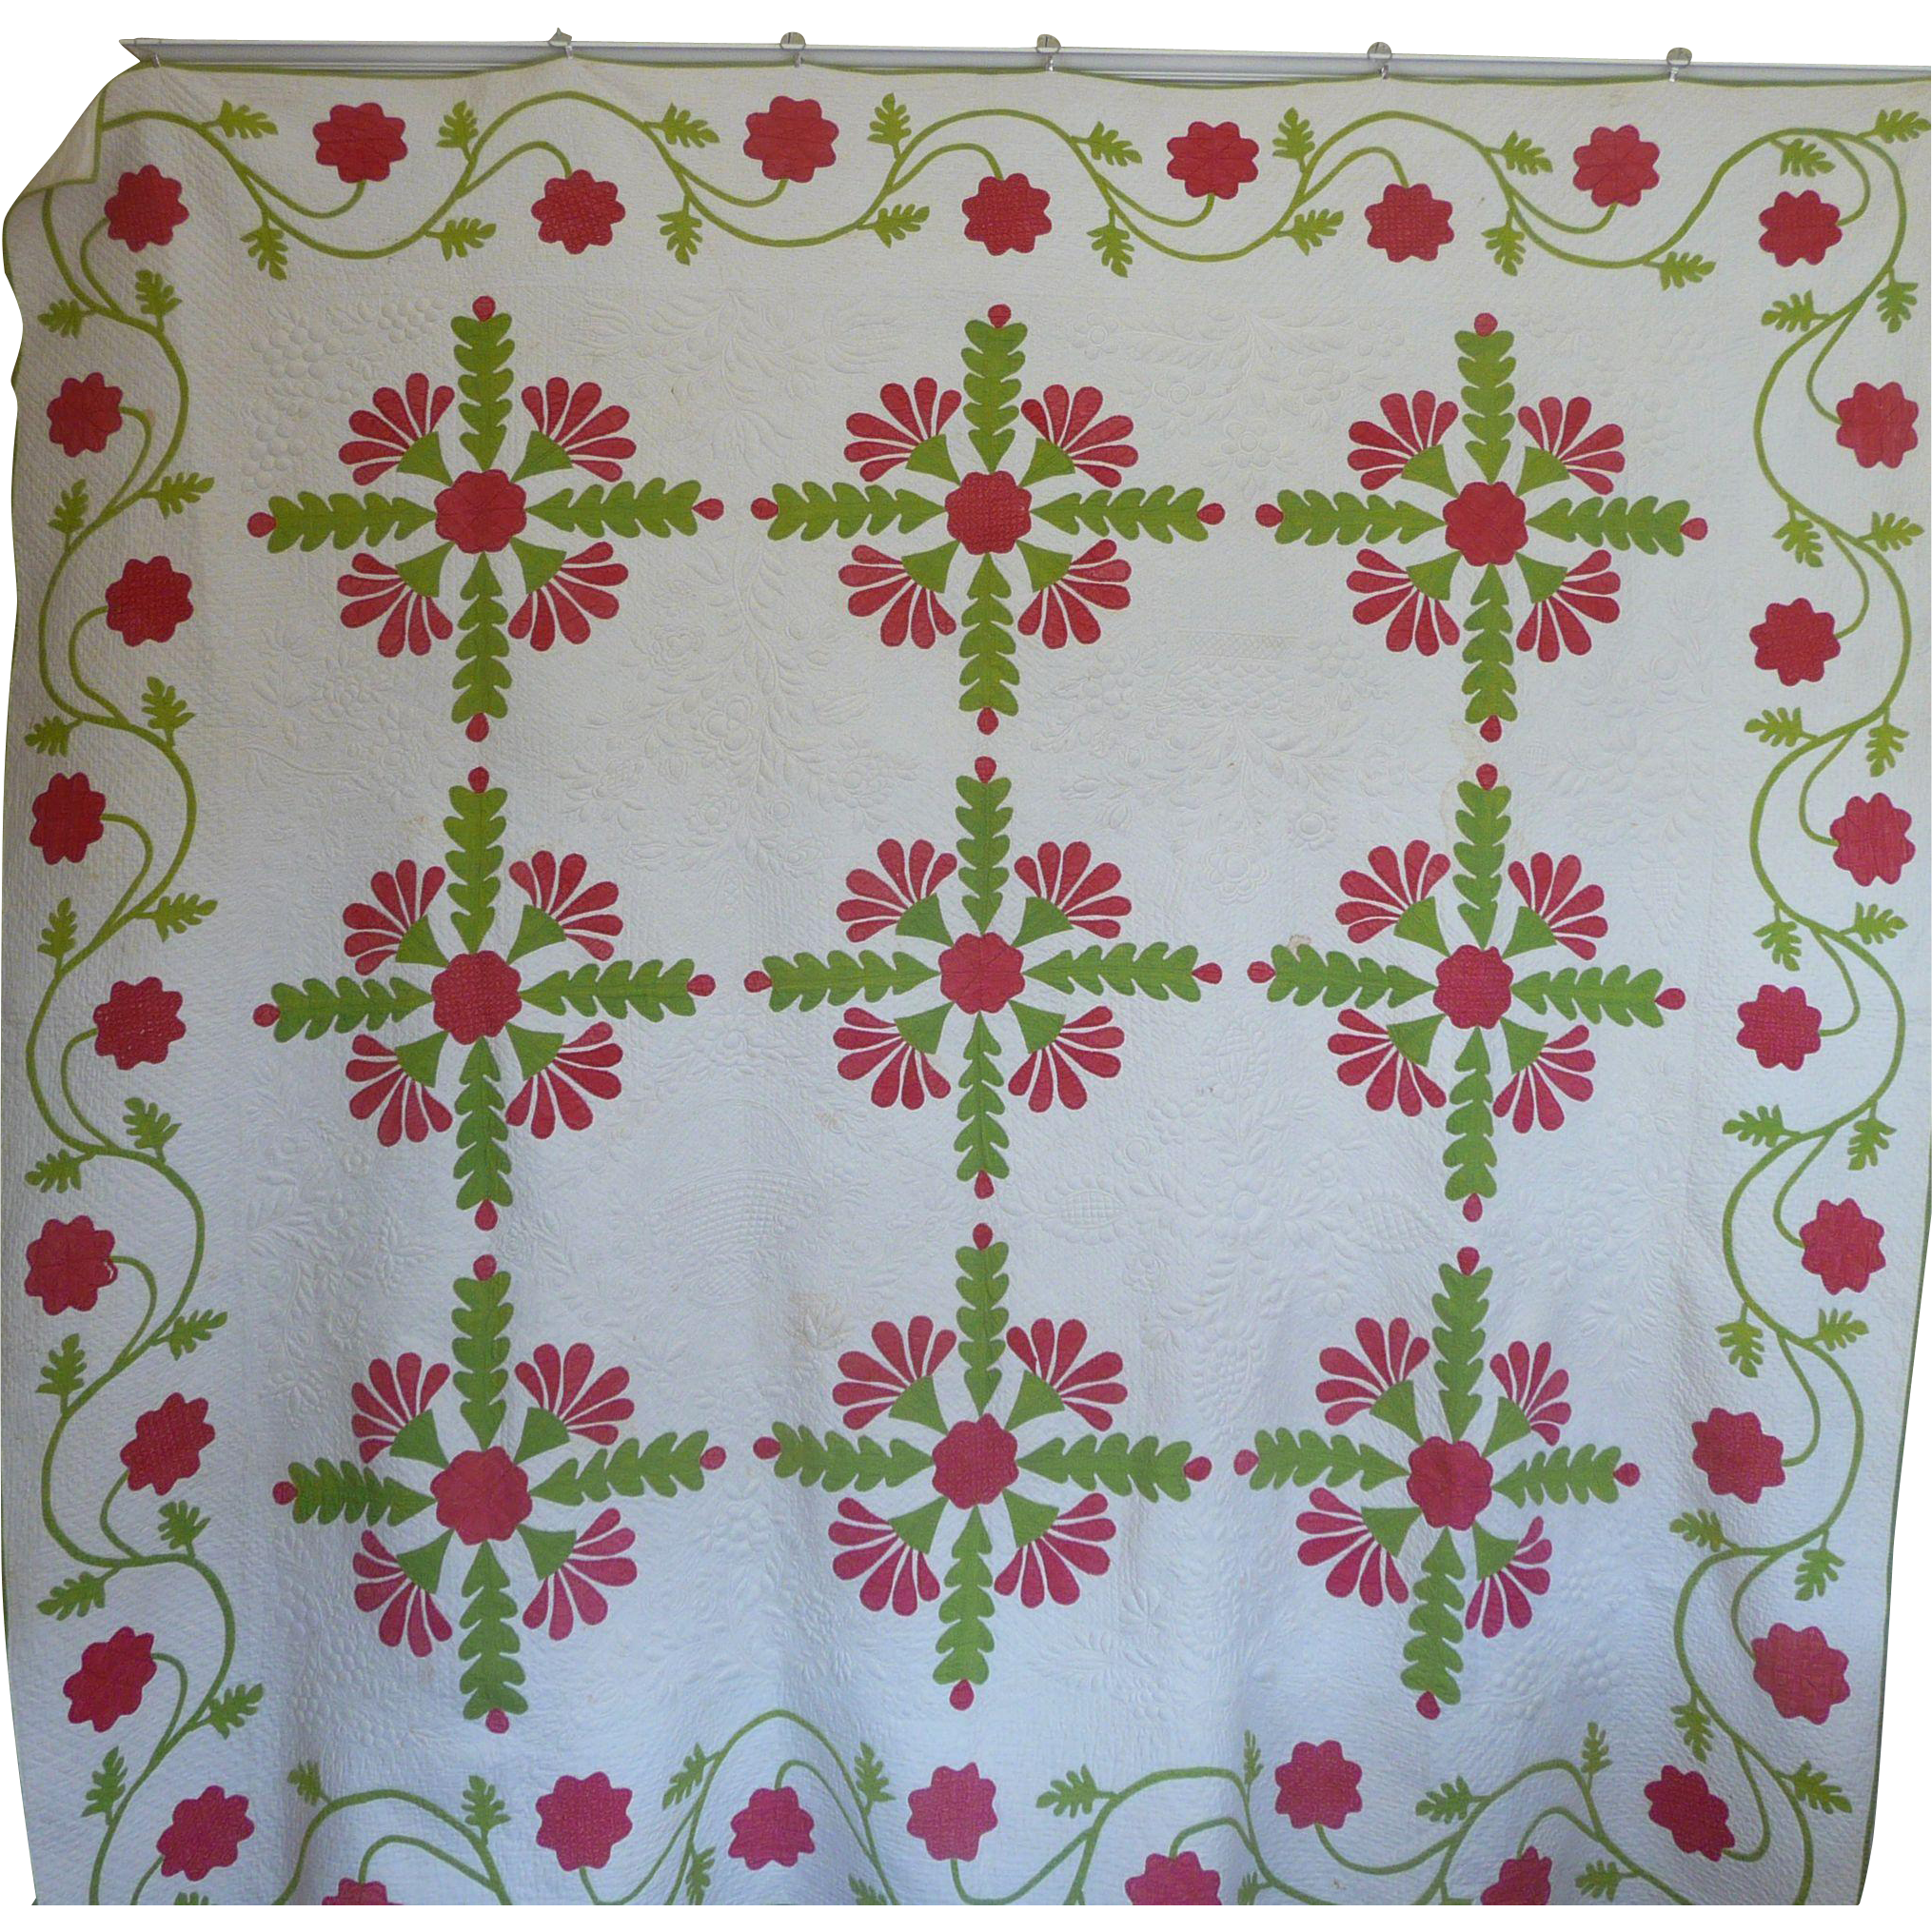 Quilting Trapunto Designs : Trapunto Applique Quilt EXQUISITE initialed 1800 s ~ 20%OFF from cowhollowcollectibles on Ruby Lane